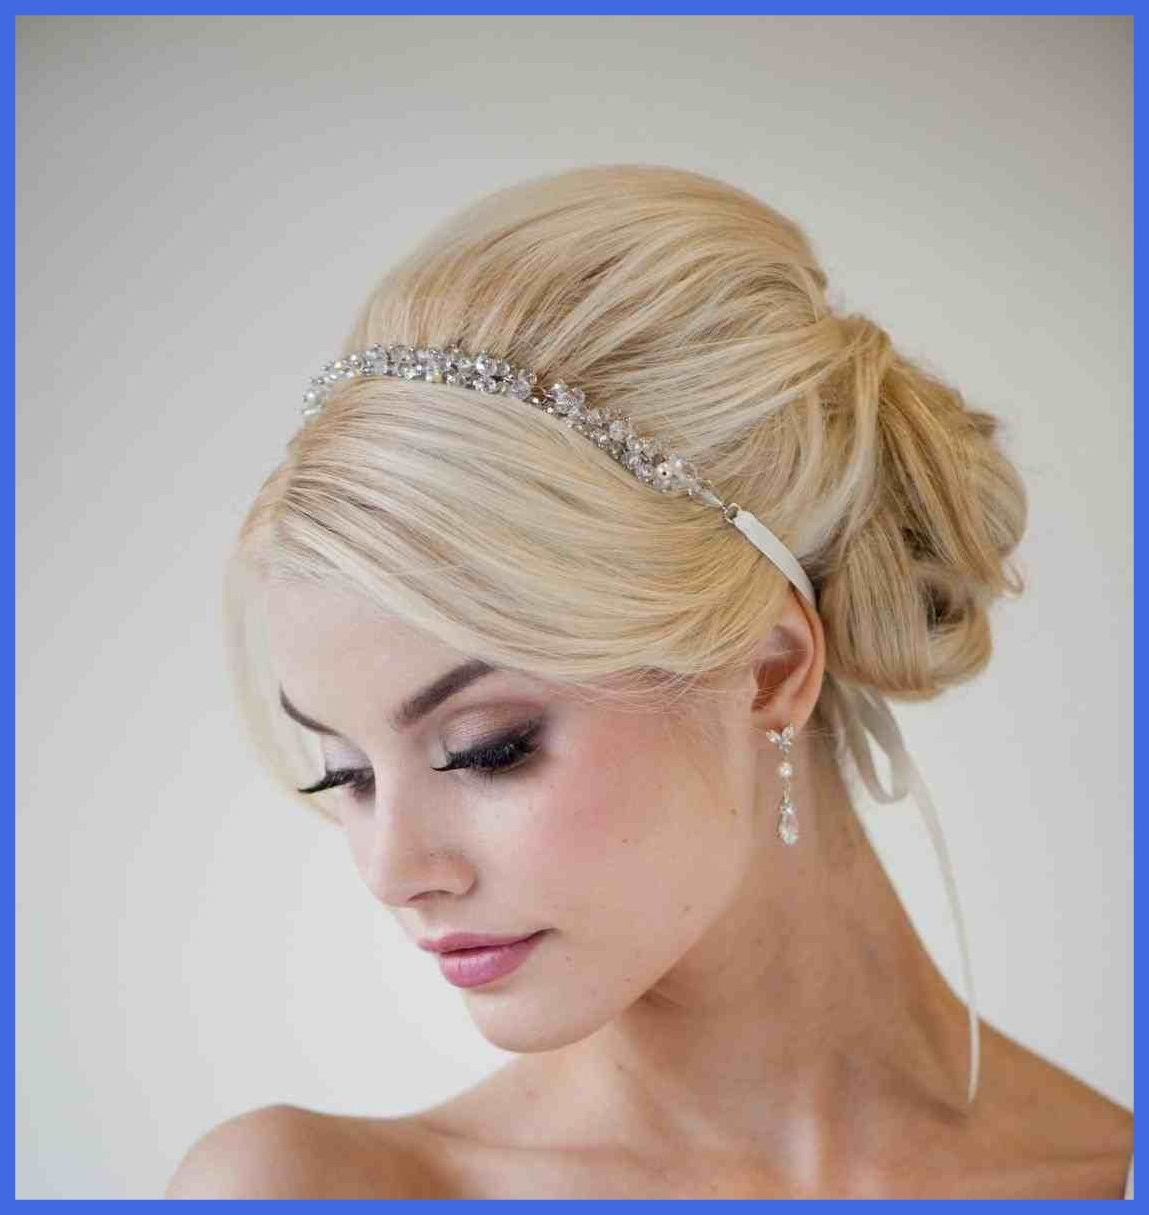 Inspiring Wedding Hairstyles Half Up Down With Veil The Big River For Favorite Wedding Hairstyles With Headband And Veil (View 8 of 15)